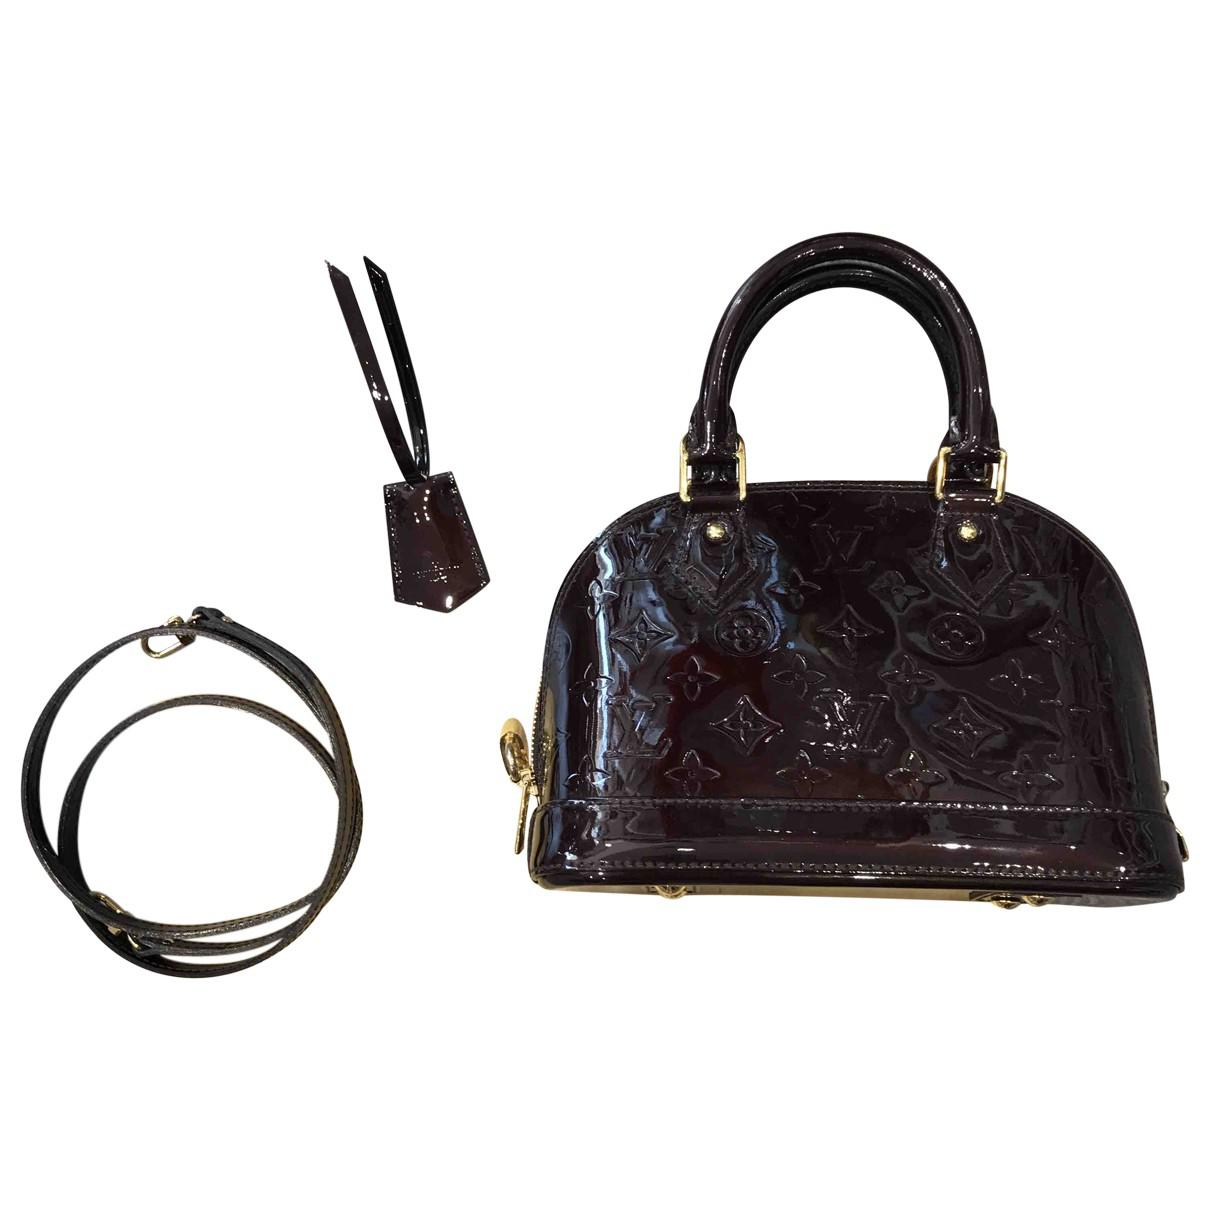 34a9254d409b Lyst - Louis Vuitton Alma Bb Patent Leather Crossbody Bag in Black